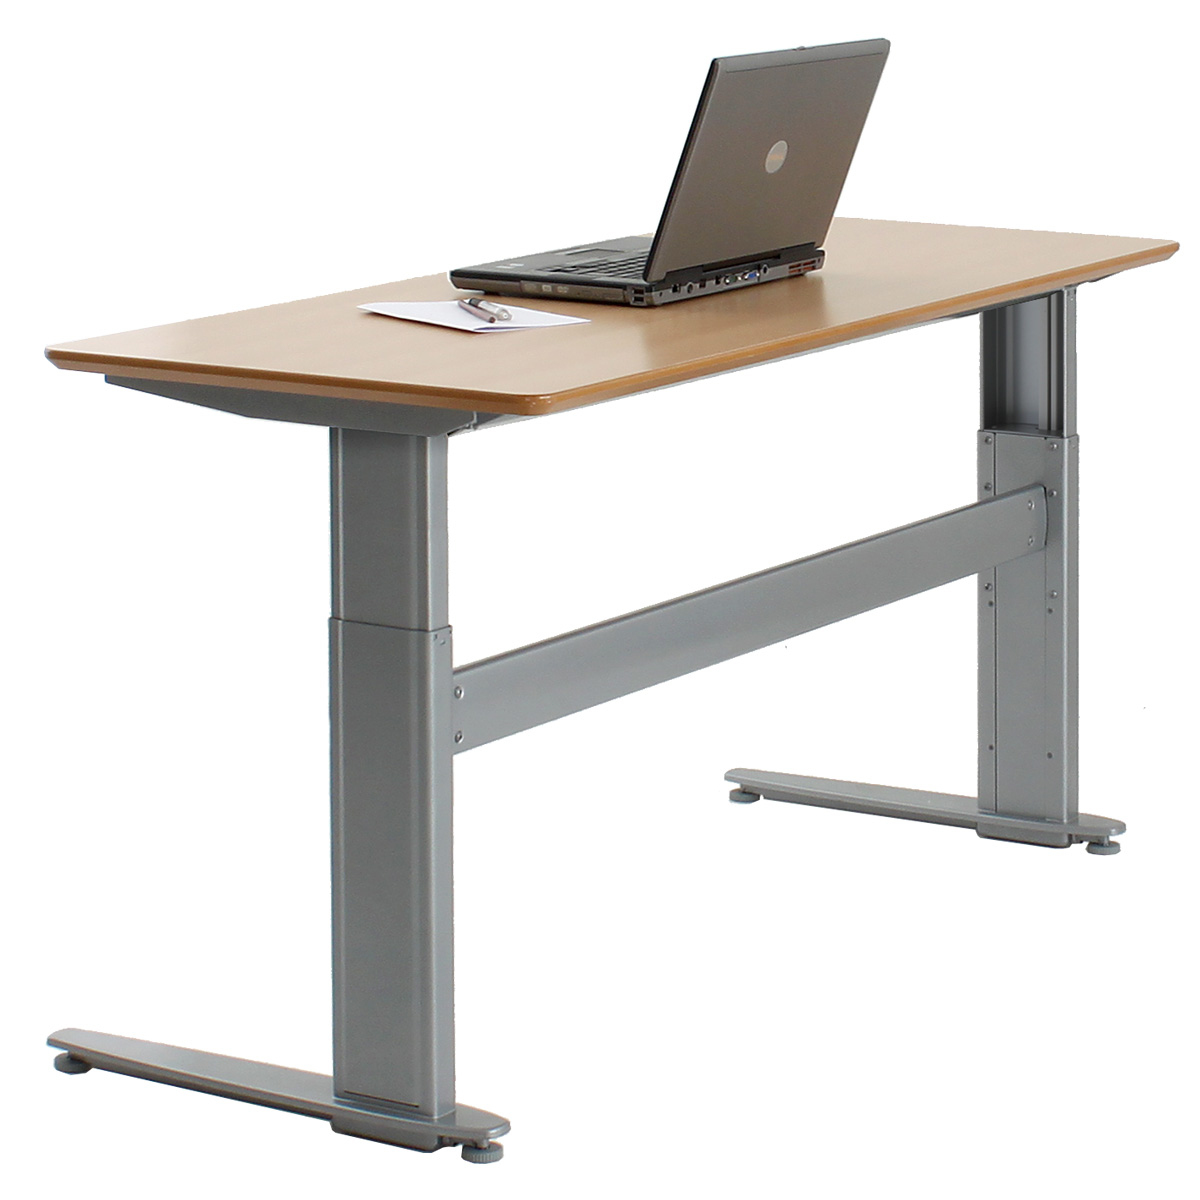 Shop Conset 501 32 Standing Desks At The Human Solution